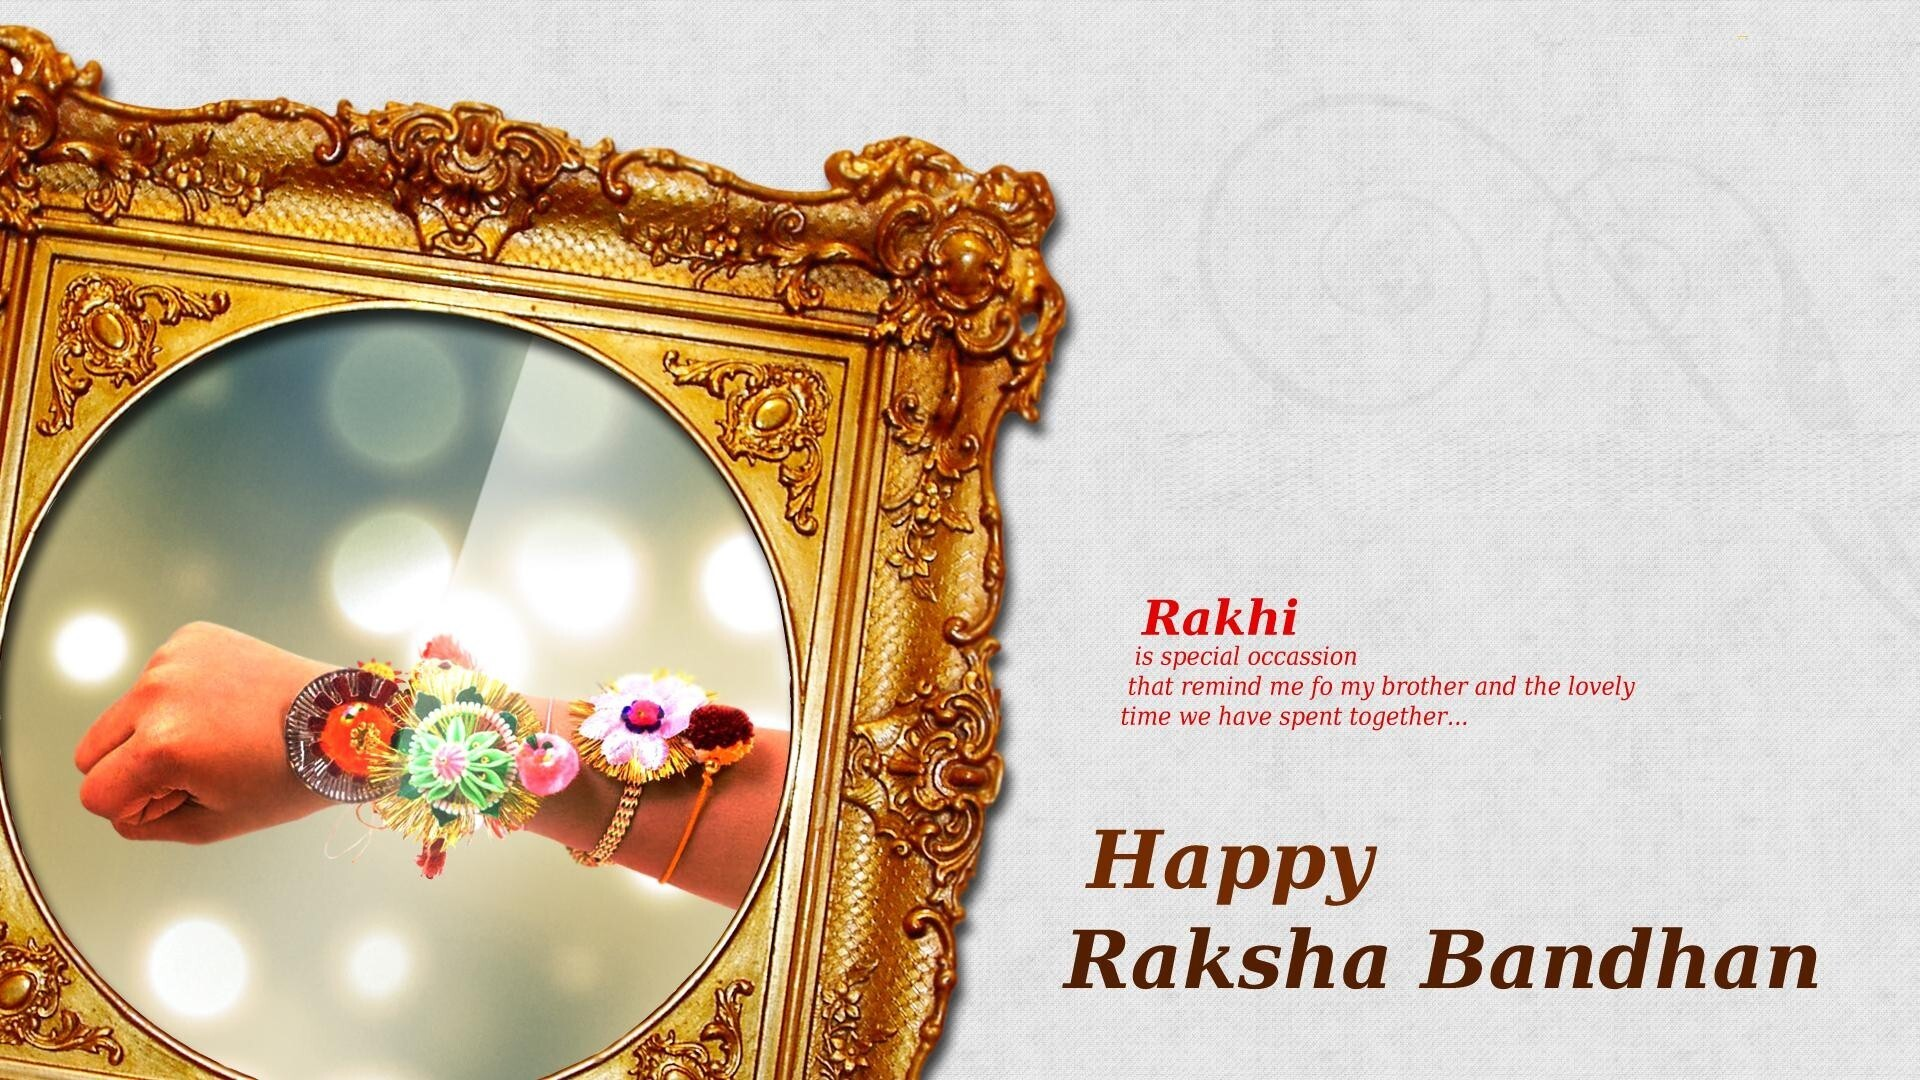 Happy Raksha Bandhan Greetings Wallpaper Hd Wallpapers